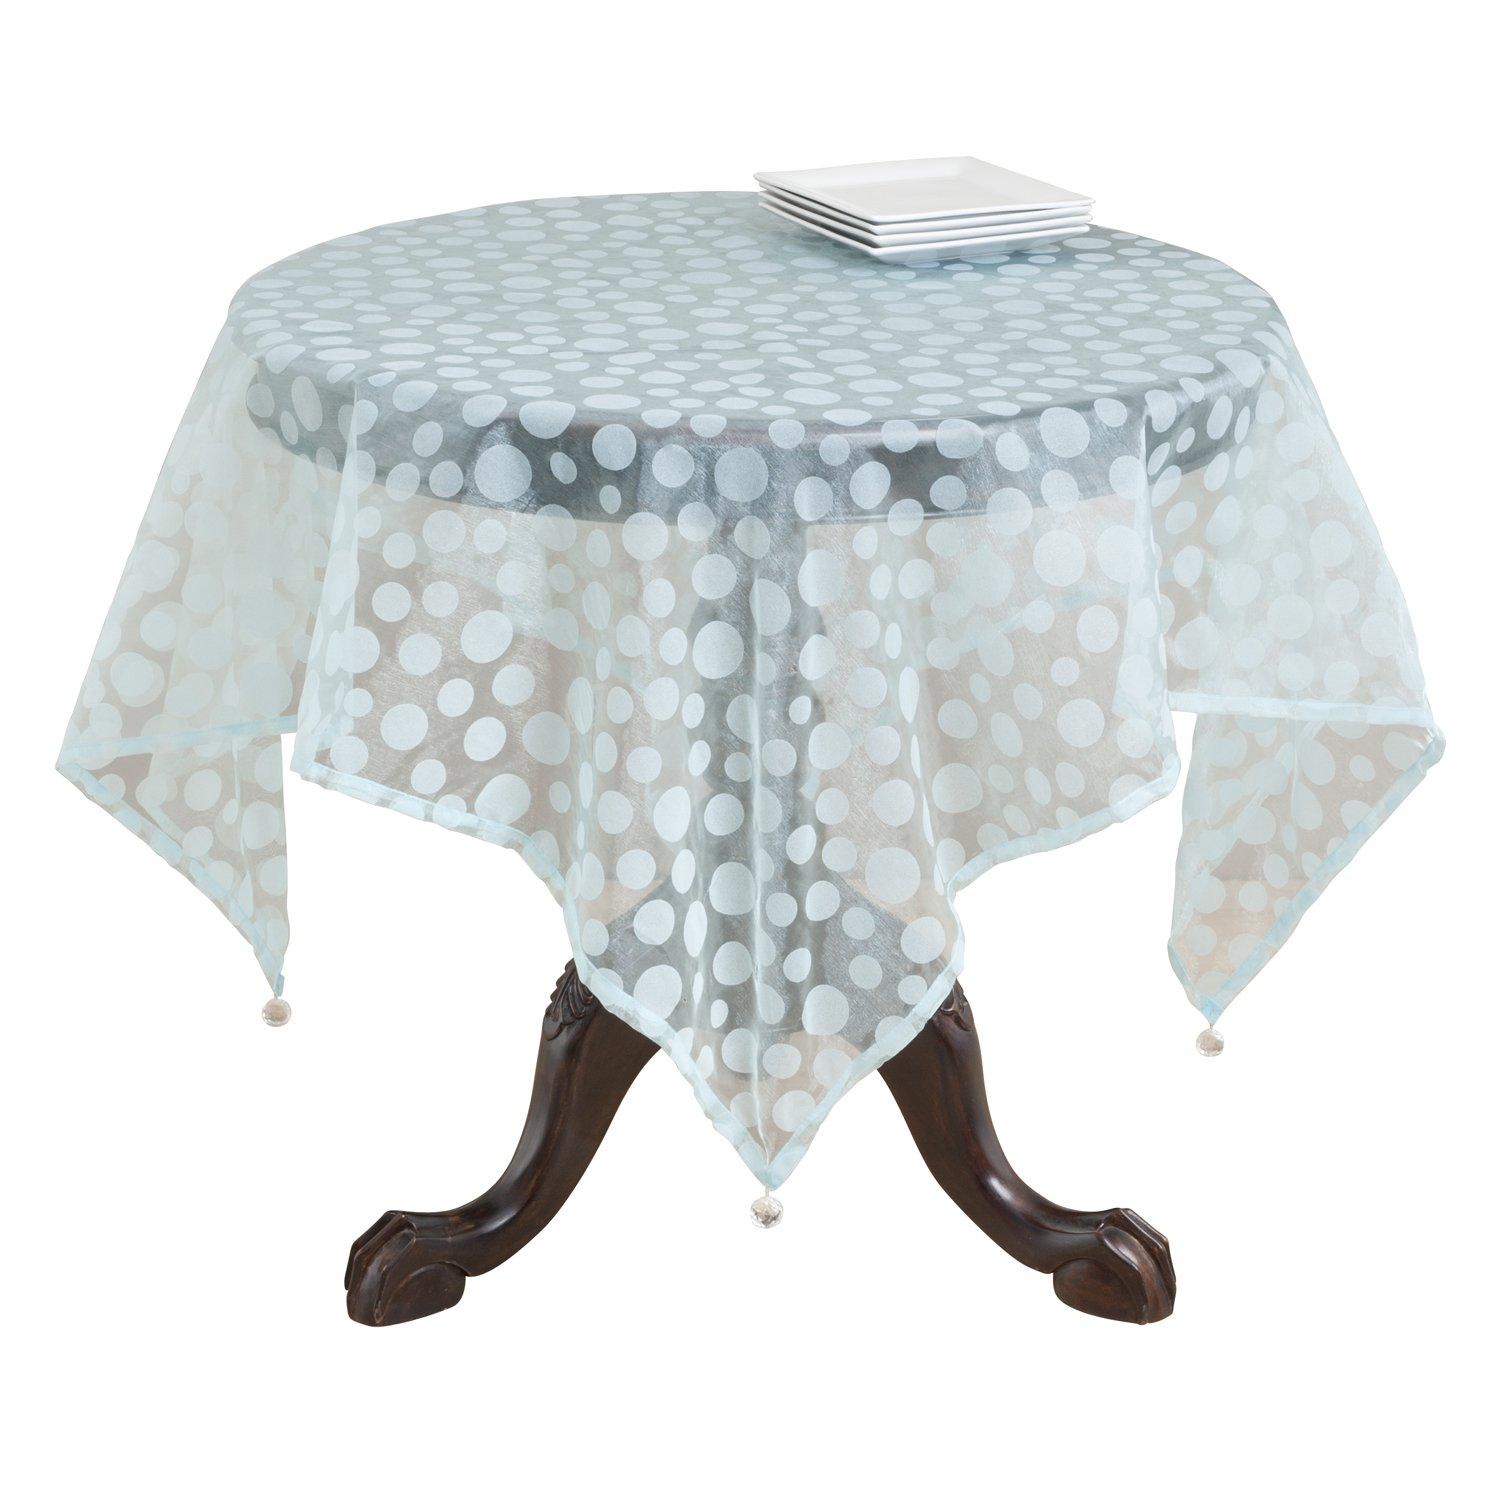 SARO LIFESTYLE 1893 Flocked Dots Square Table Topper, 54-Inch, Aqua